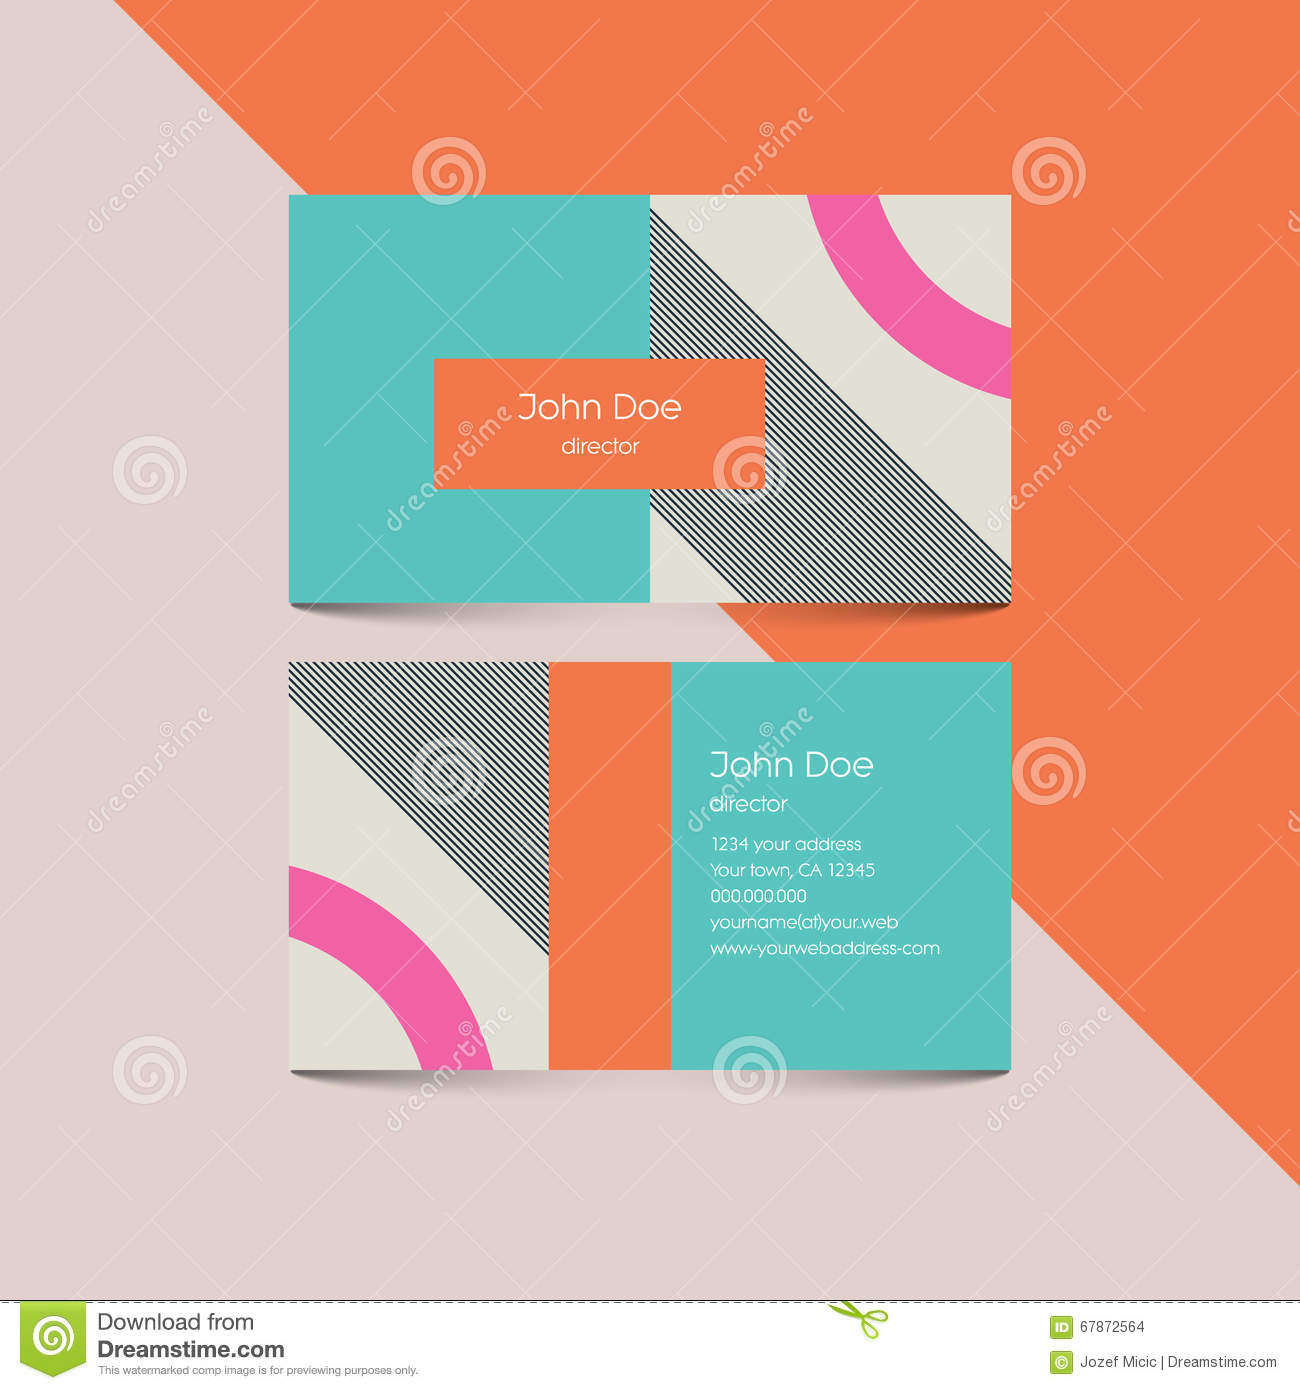 Material design business card template with 80s style background download material design business card template with 80s style background modern retro elements and geometric wajeb Choice Image